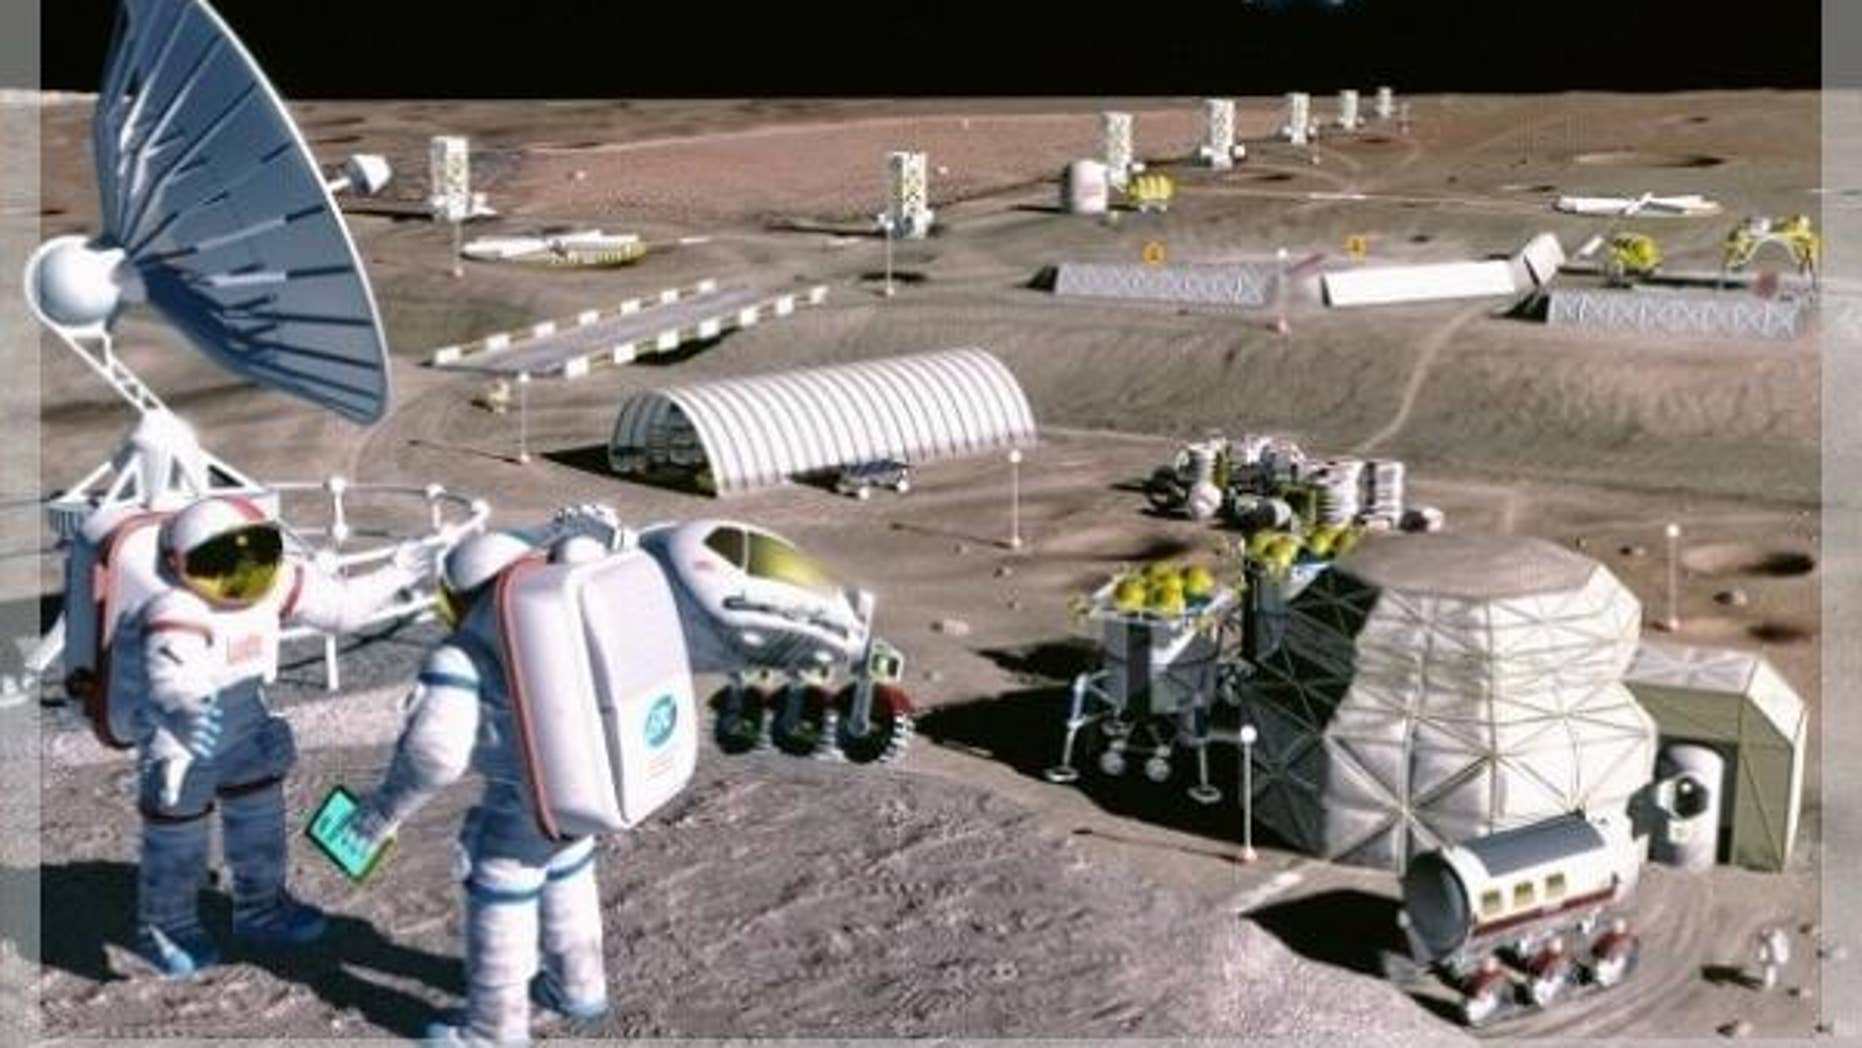 An artist's illustration of what a lunar base might look like.